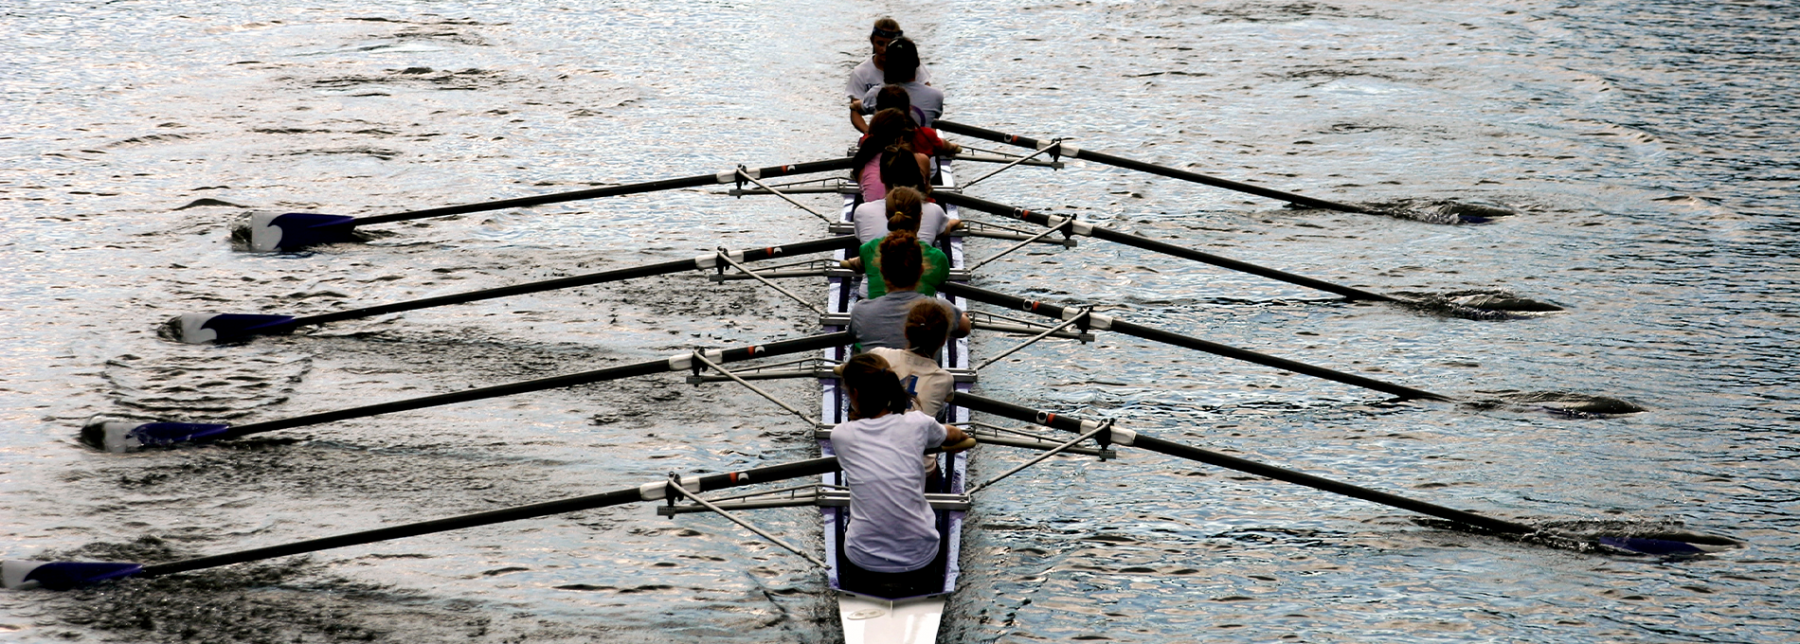 Rowers on a river